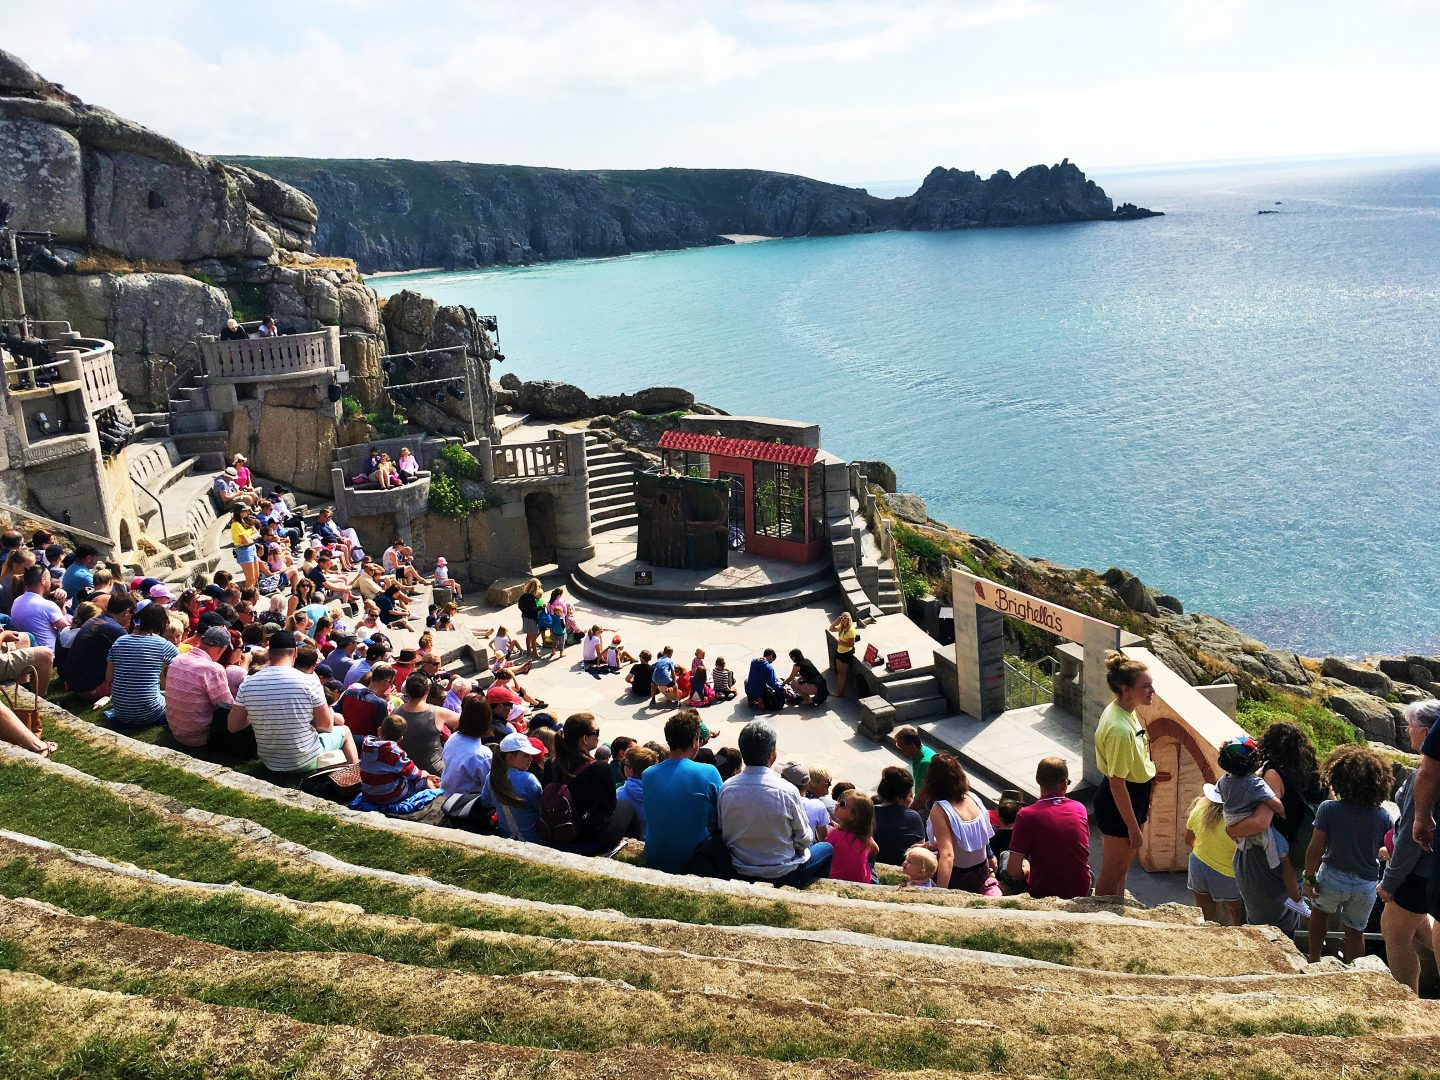 A visit to the Minack Theatre and Porthcurno Beach